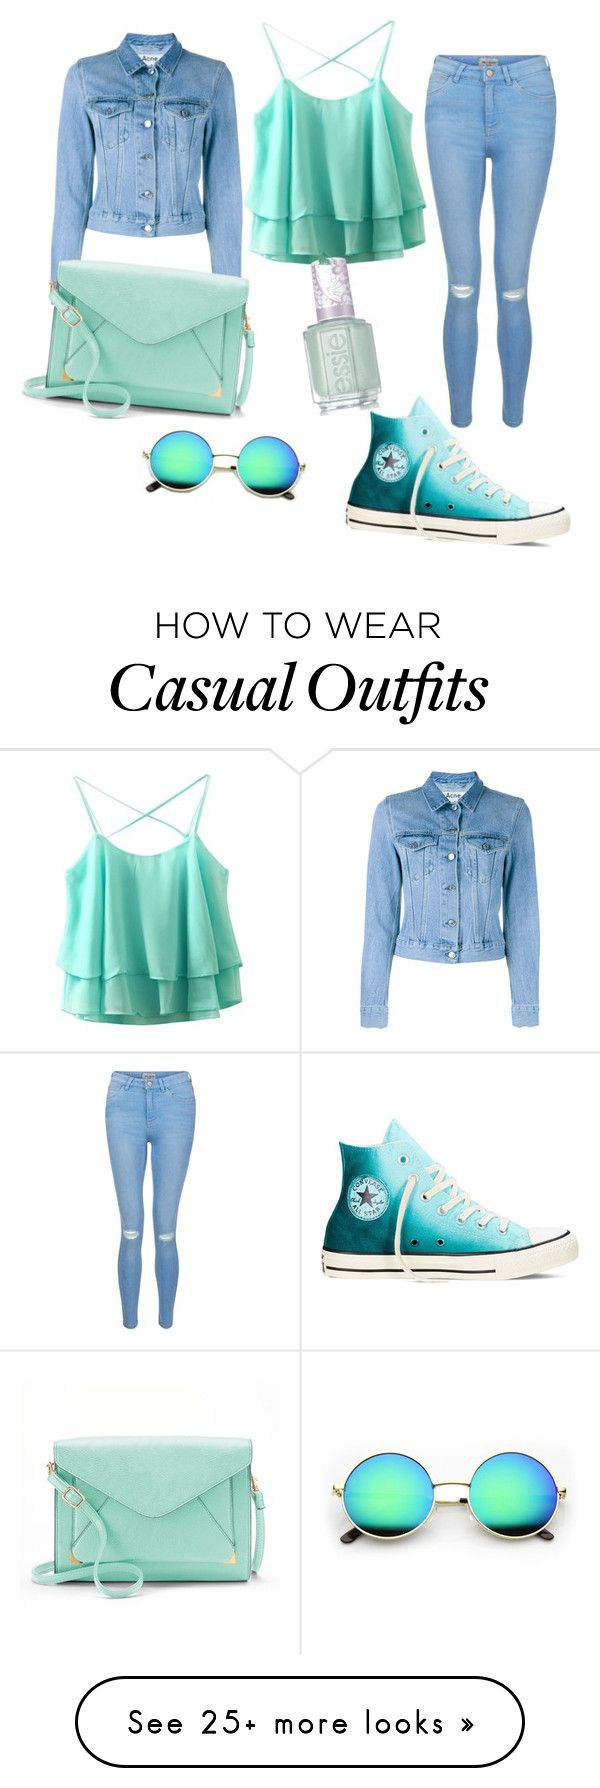 """MY CASUAL LOOK"" by angeladigrassi on Polyvore featuring New Look, Acne Studios, Converse, Apt. 9 and Essie"